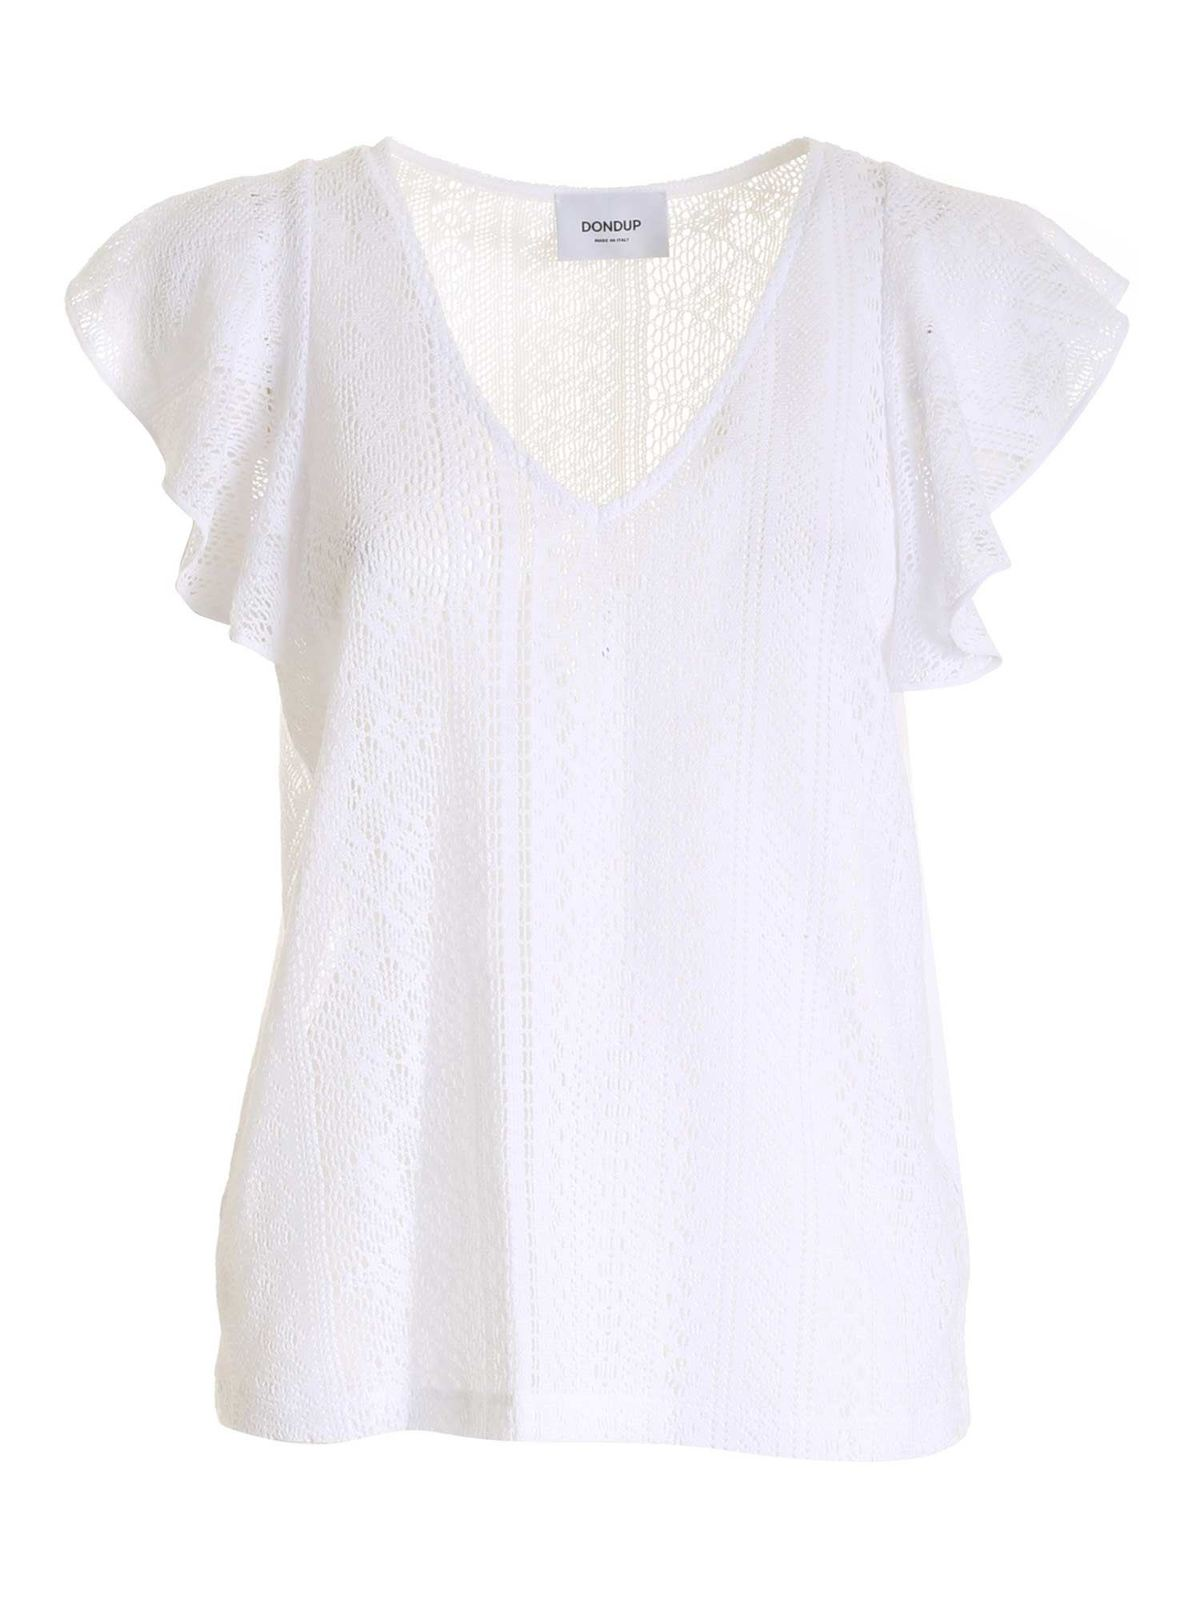 Dondup Cottons V-NECK TOP IN WHITE